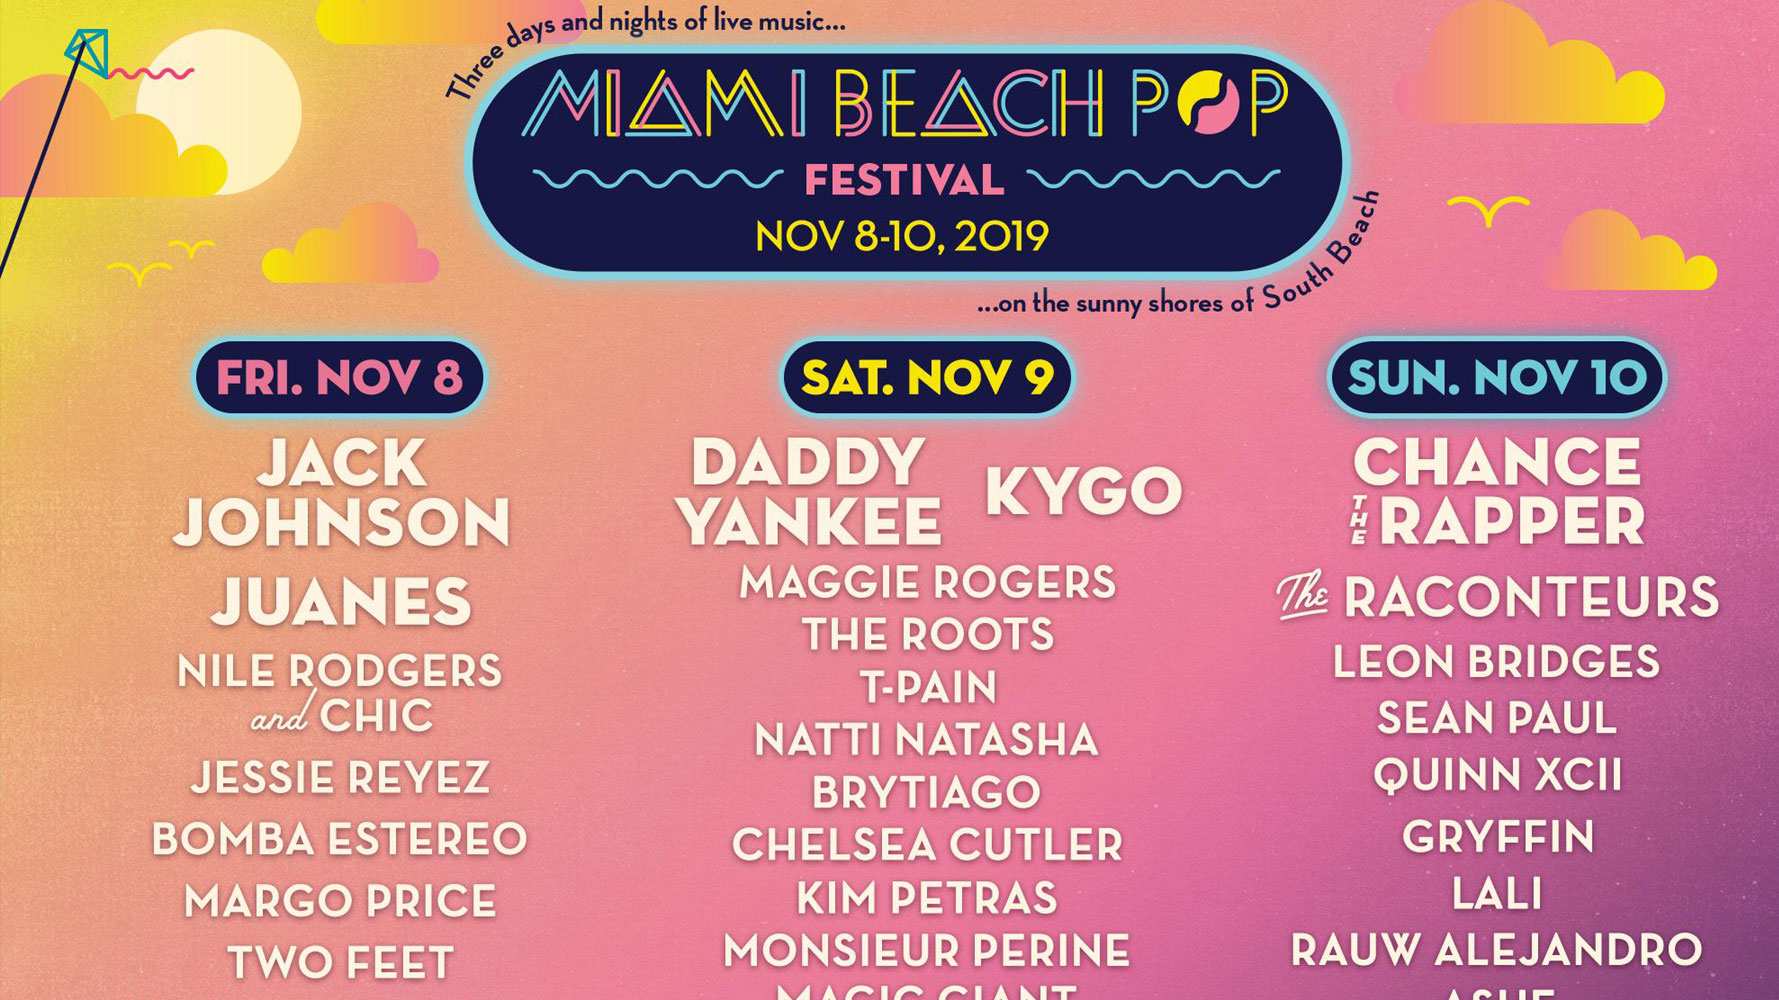 Miami Beach Pop Festival 2019